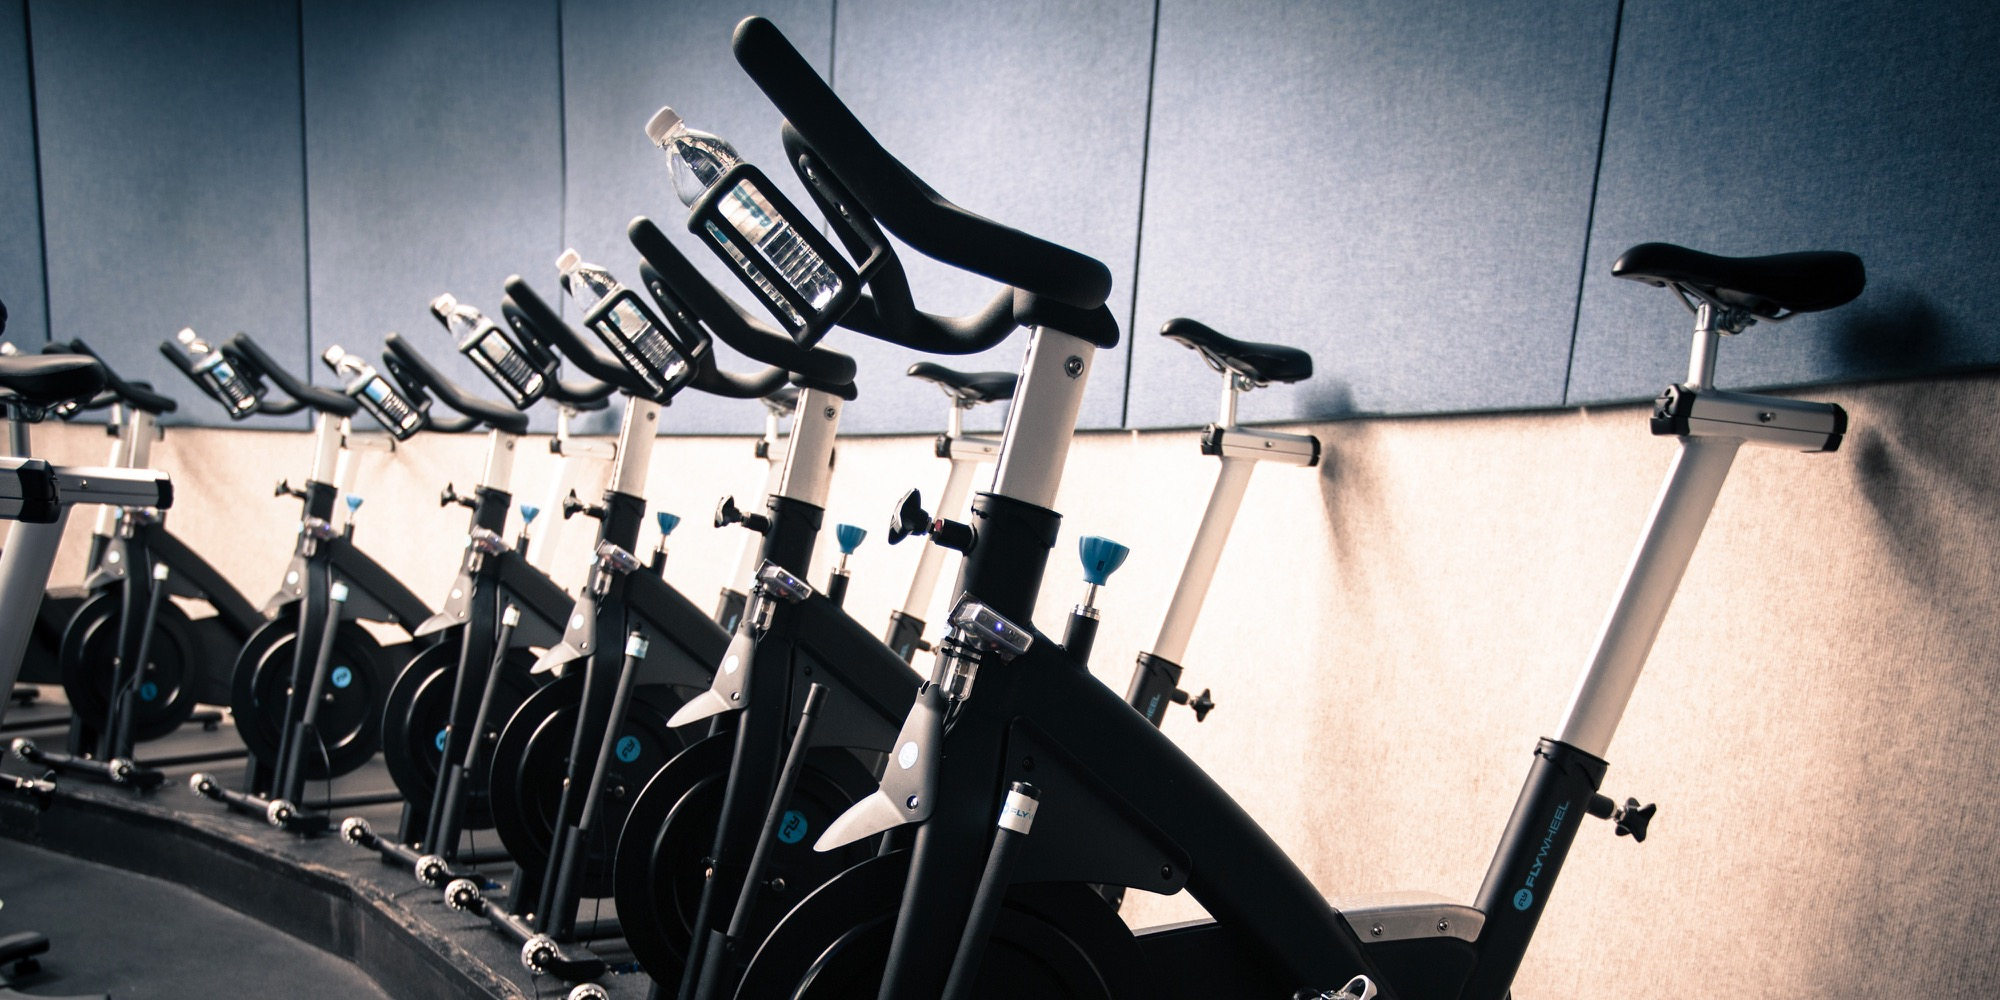 It's Official: These Are the 7 Best Spinning Classes in Dubai